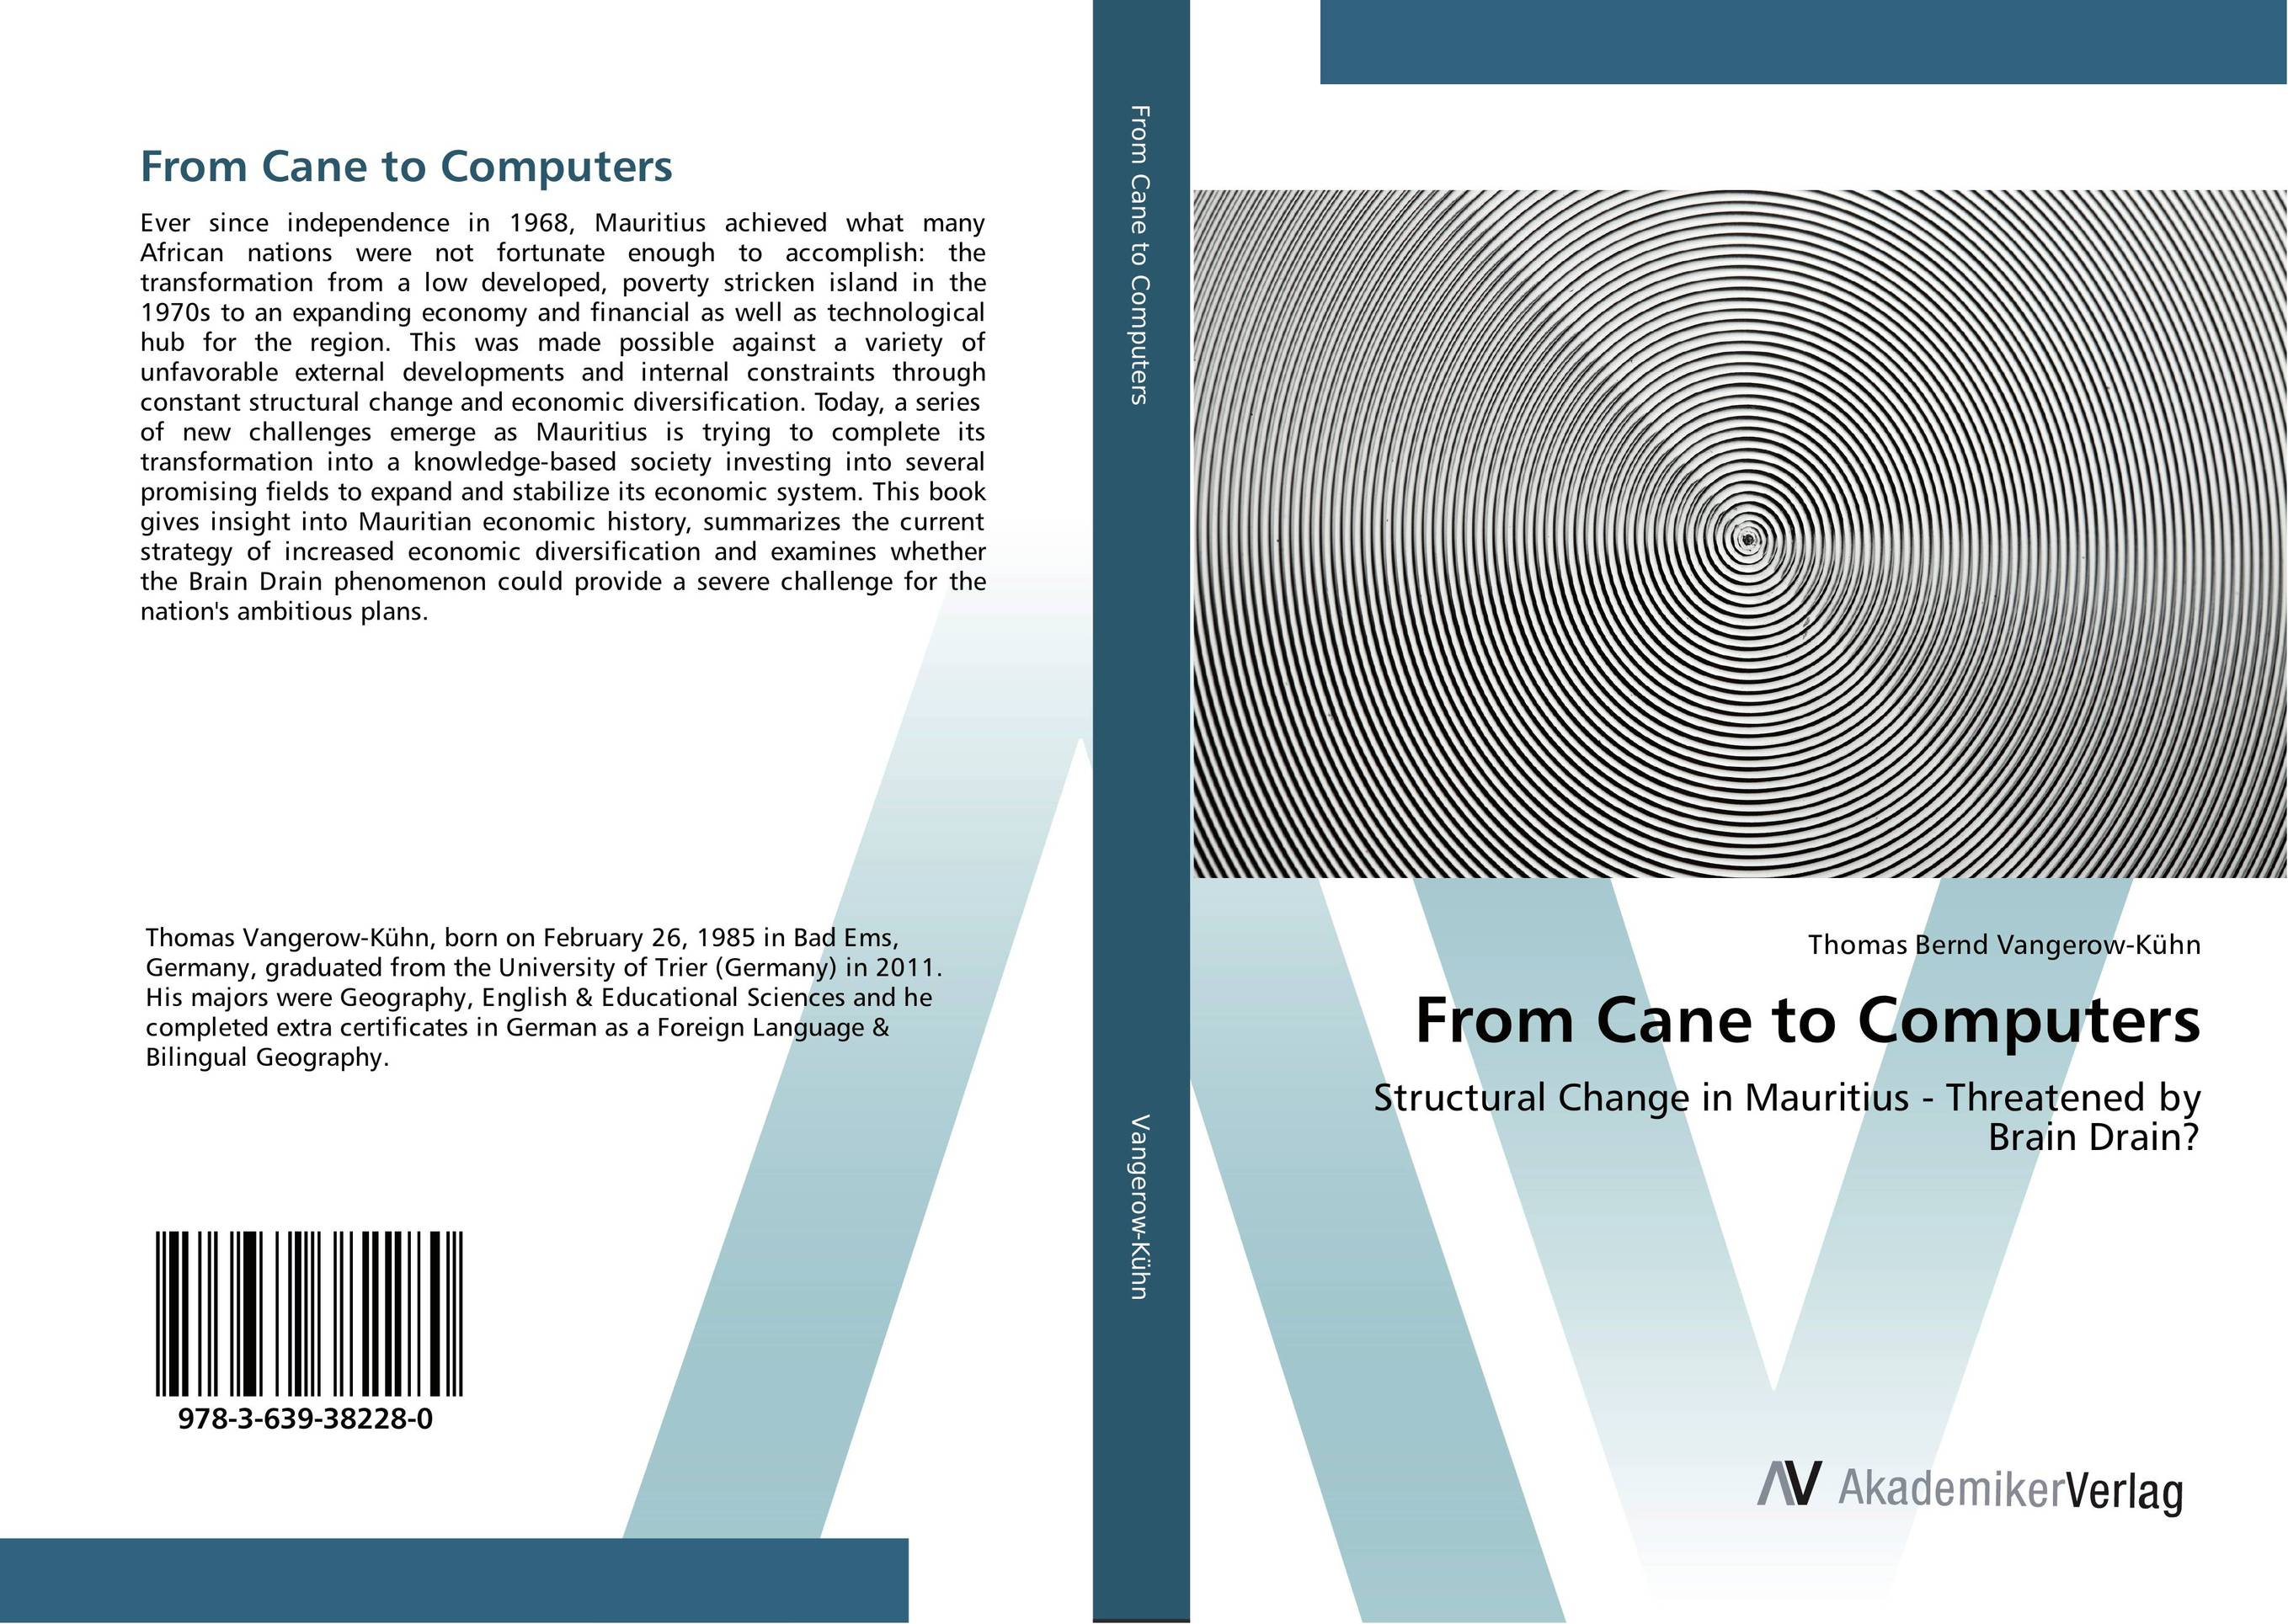 From Cane to Computers economic methodology